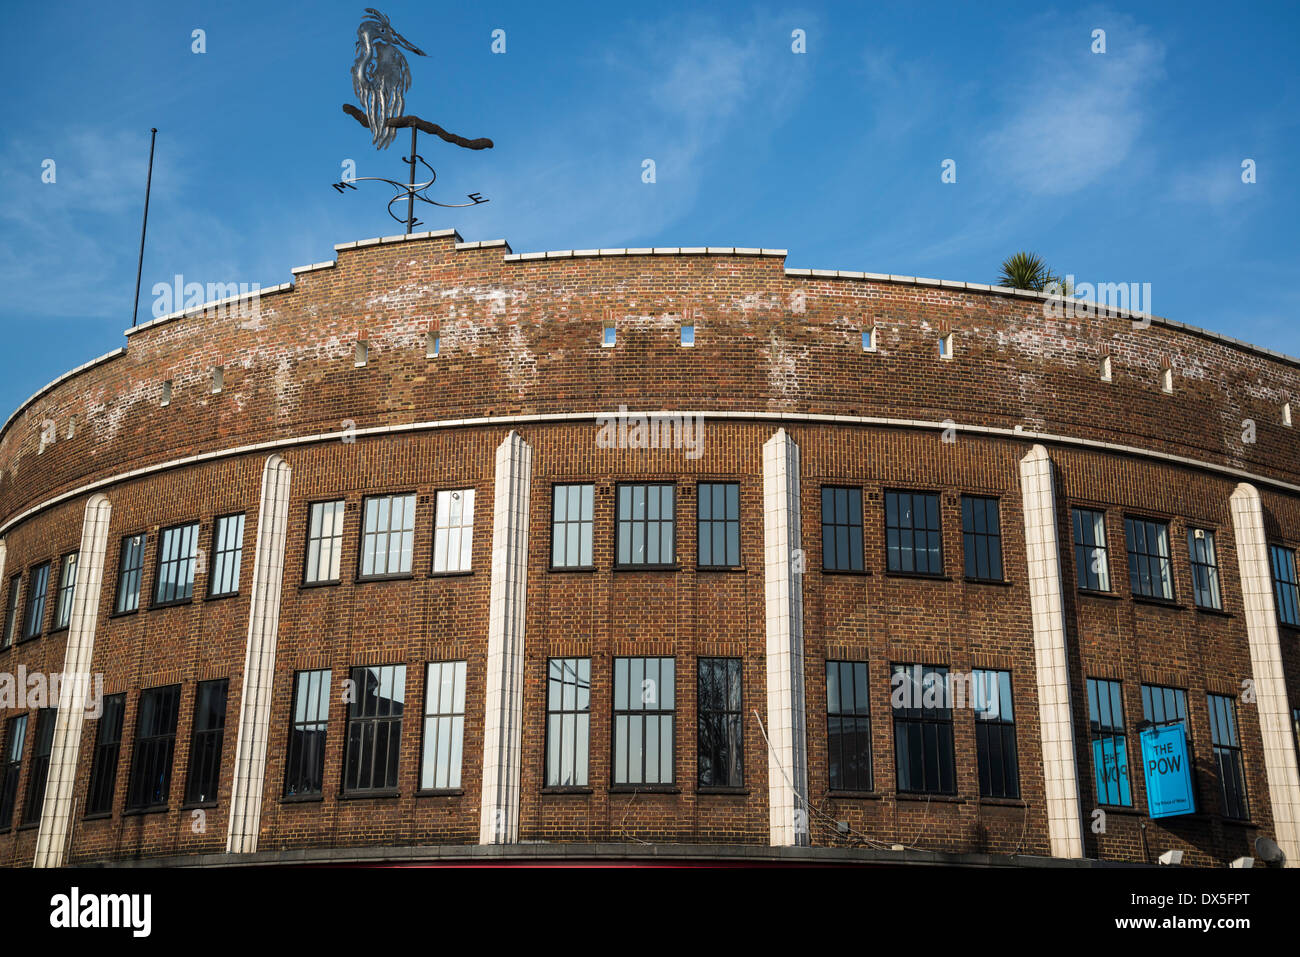 Kingfisher sculpture on top of the building at the corner of Coldharbour Lane and Brixton Road, Brixton, London, UK - Stock Image